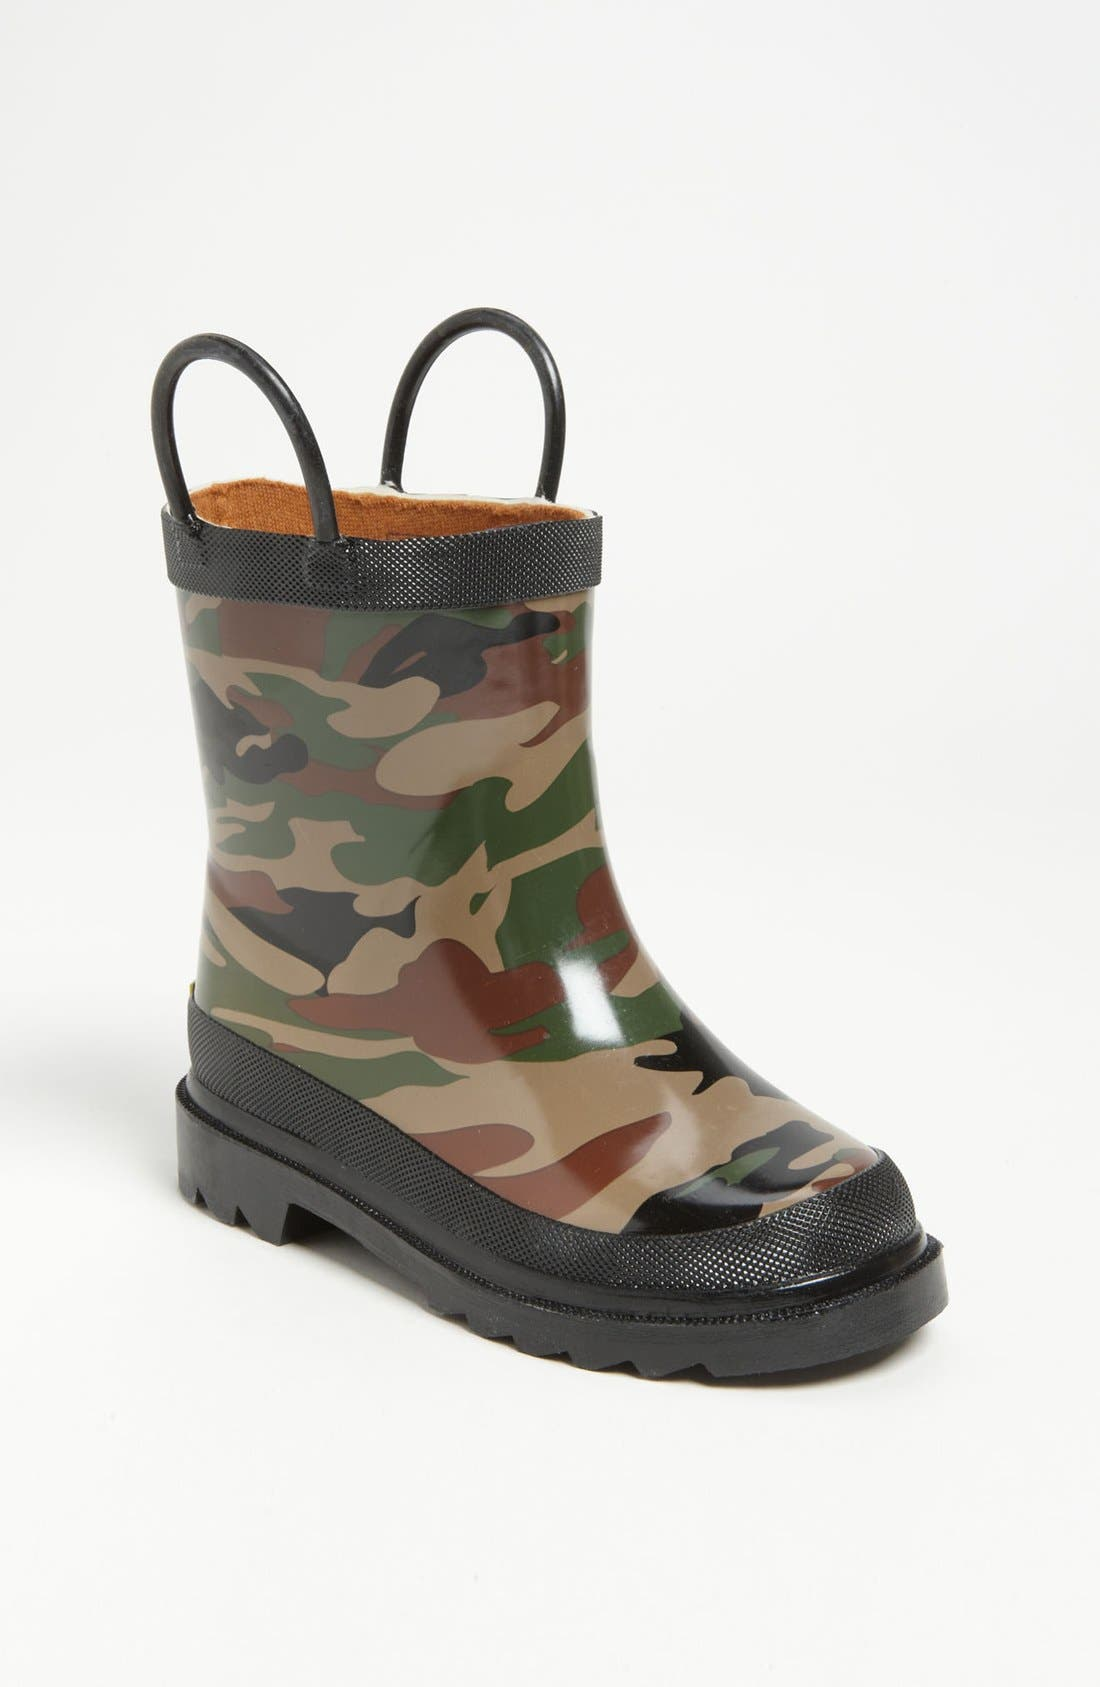 Western Chief 'Camo' Rain Boot (Walker, Toddler, Little Kid & Big Kid)